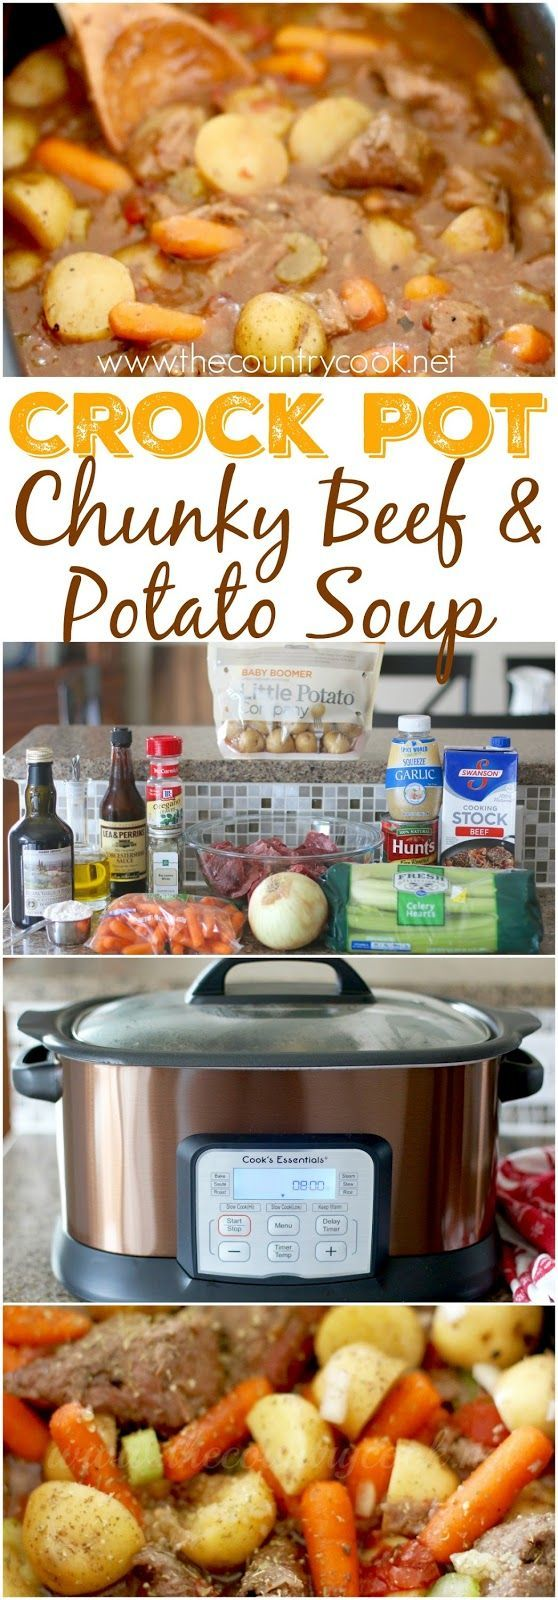 Crock Pot Chunky Beef & Potato Stew recipe from The Country Cook